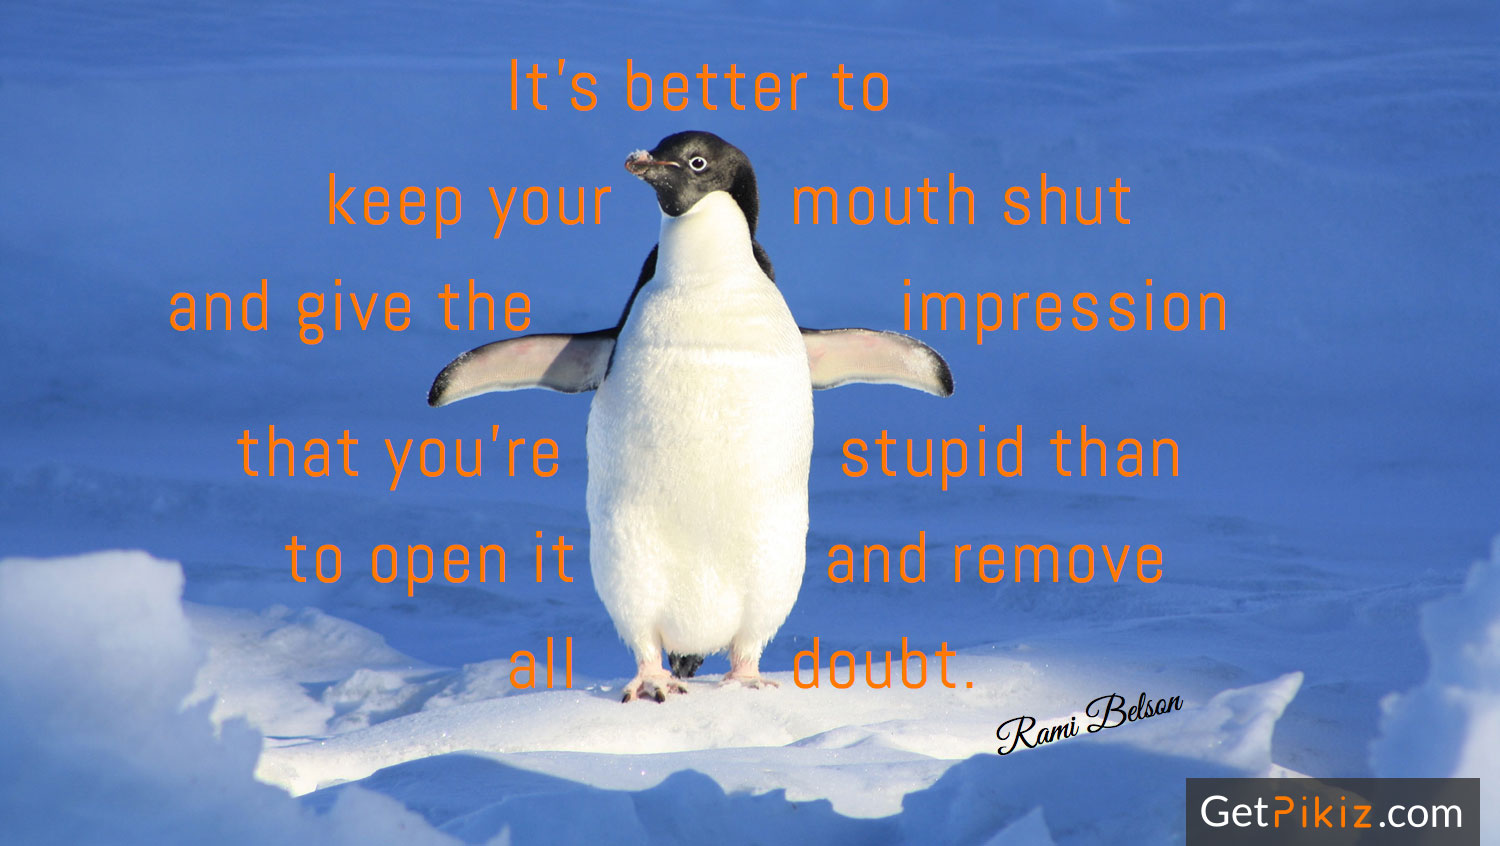 It's better to keep your mouth shut and give the impression that you're stupid than to open it and remove all doubt. – Rami Belson